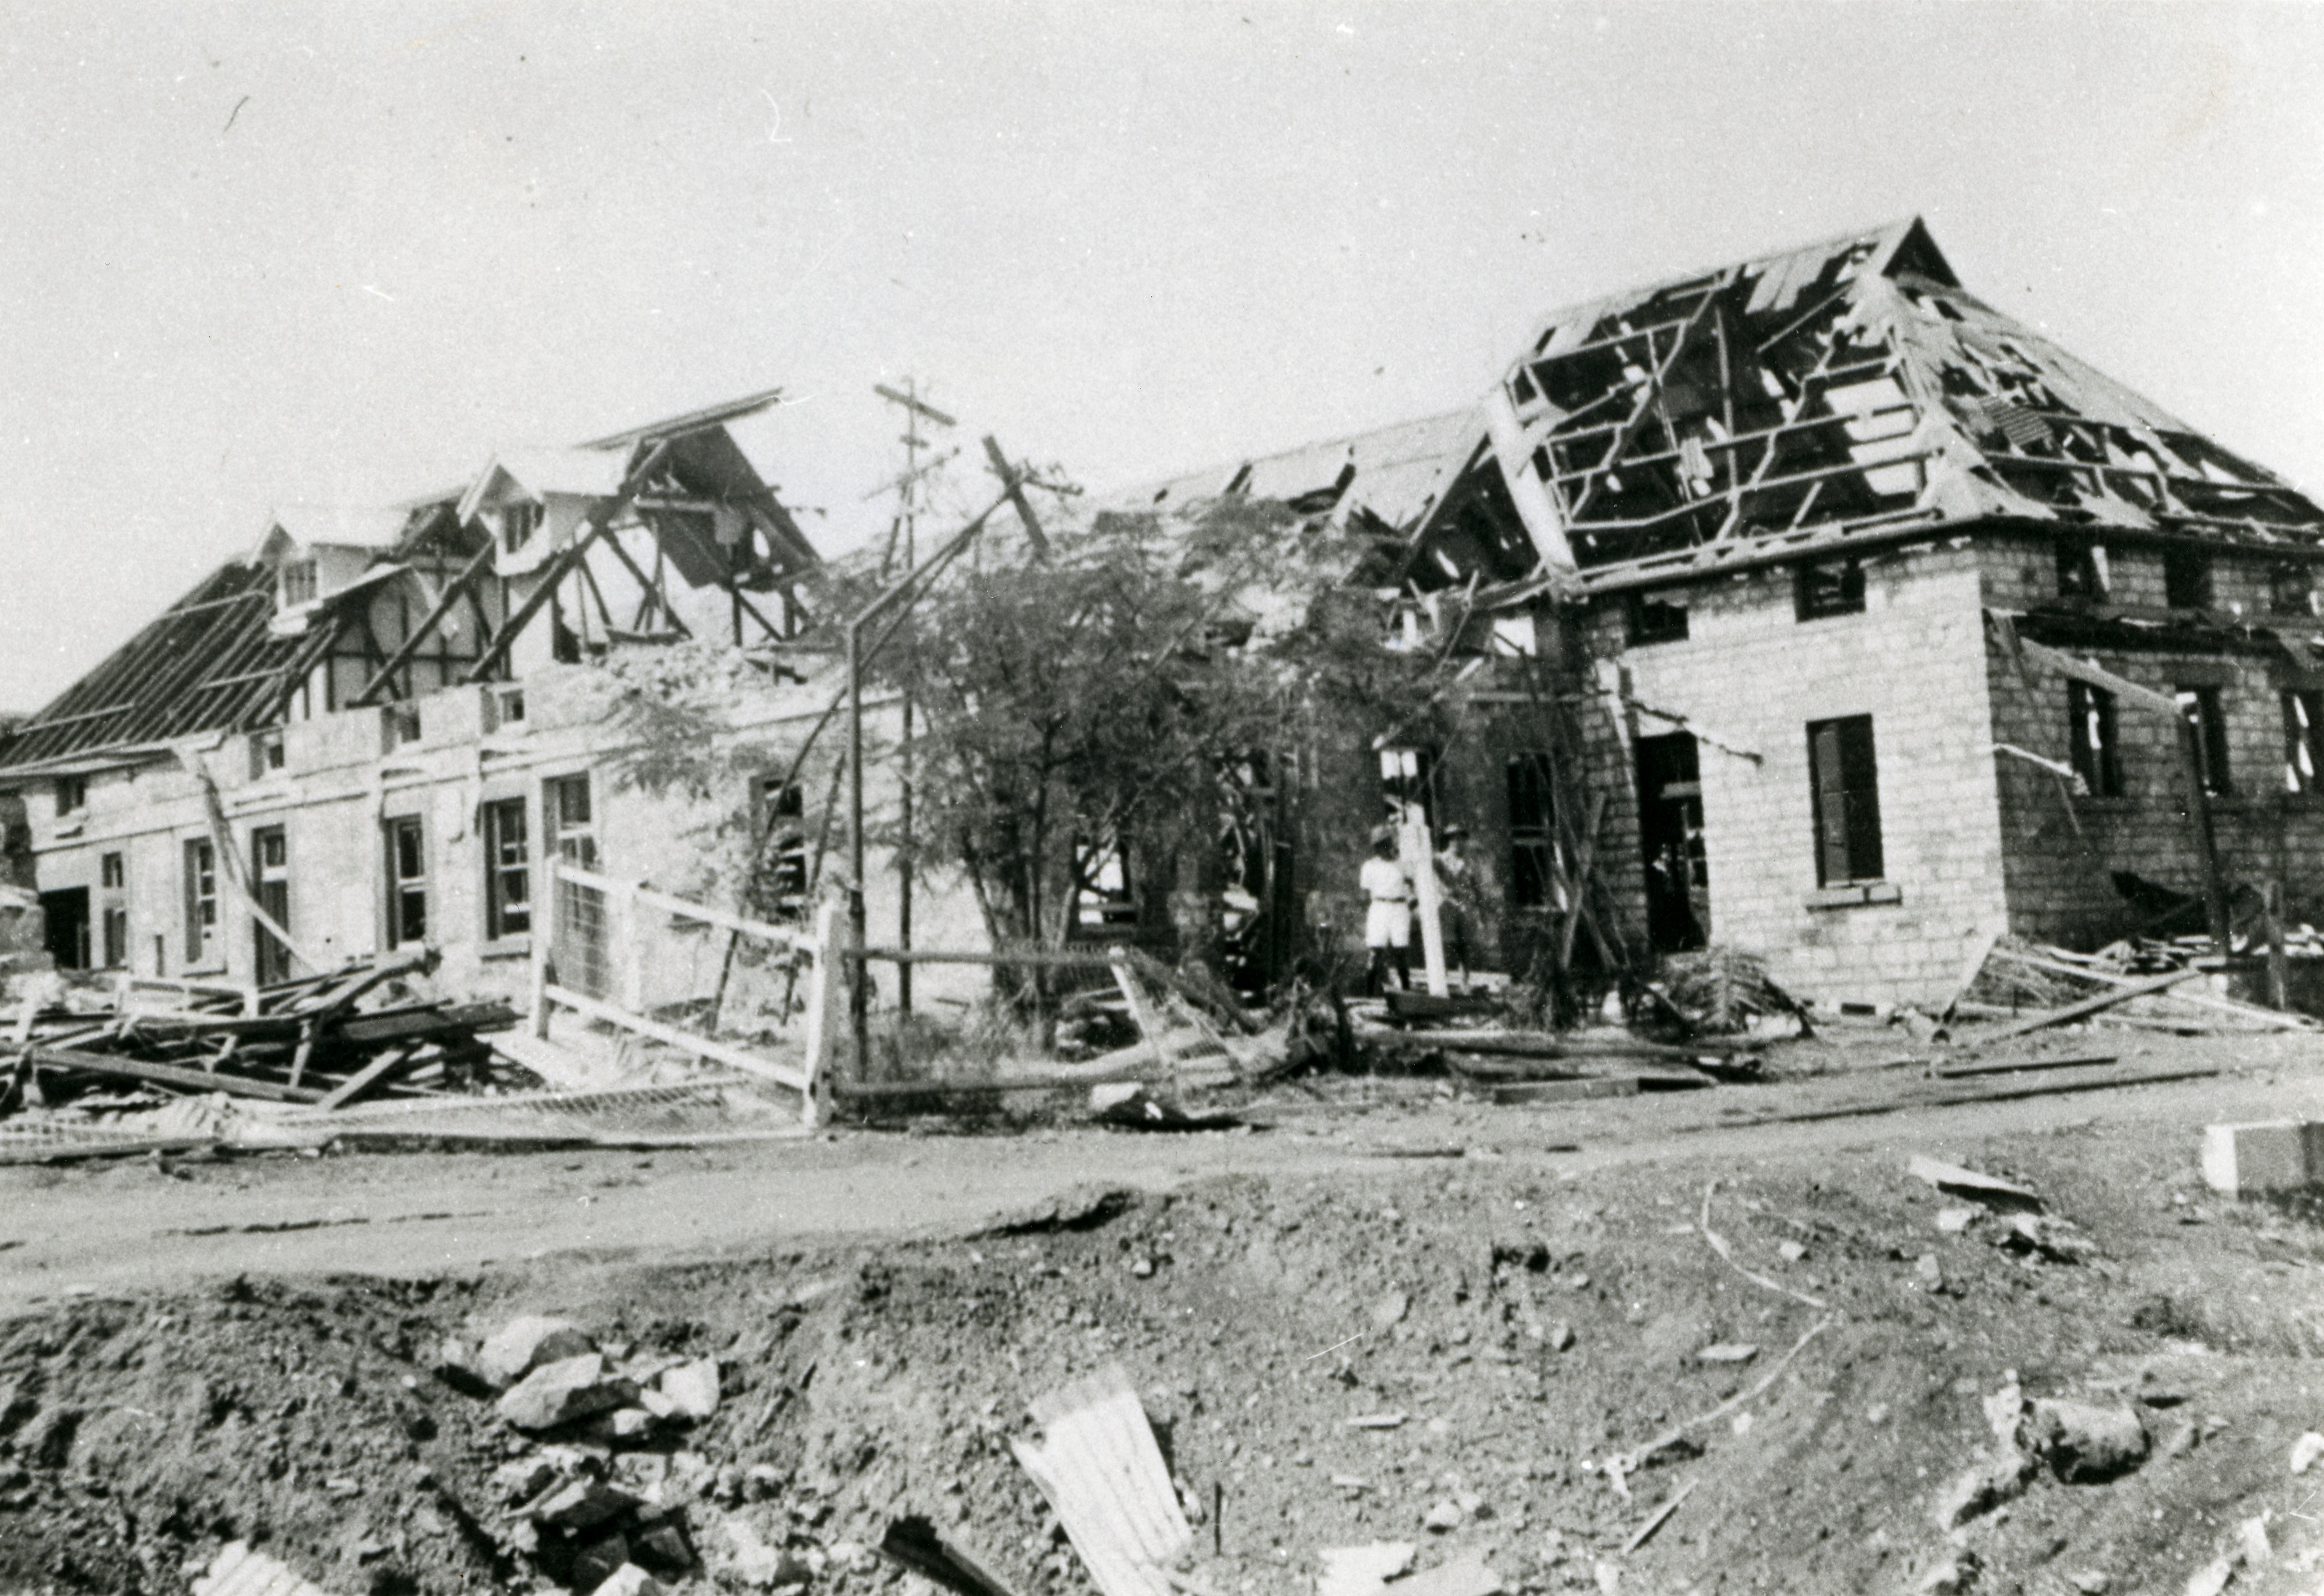 Parts of BAT, cable station, telegraph offices and Darwin Post Office buildings destroyed in the first Japanese air raids on 19 February 1942, showing one of the bomb craters in the foreground.